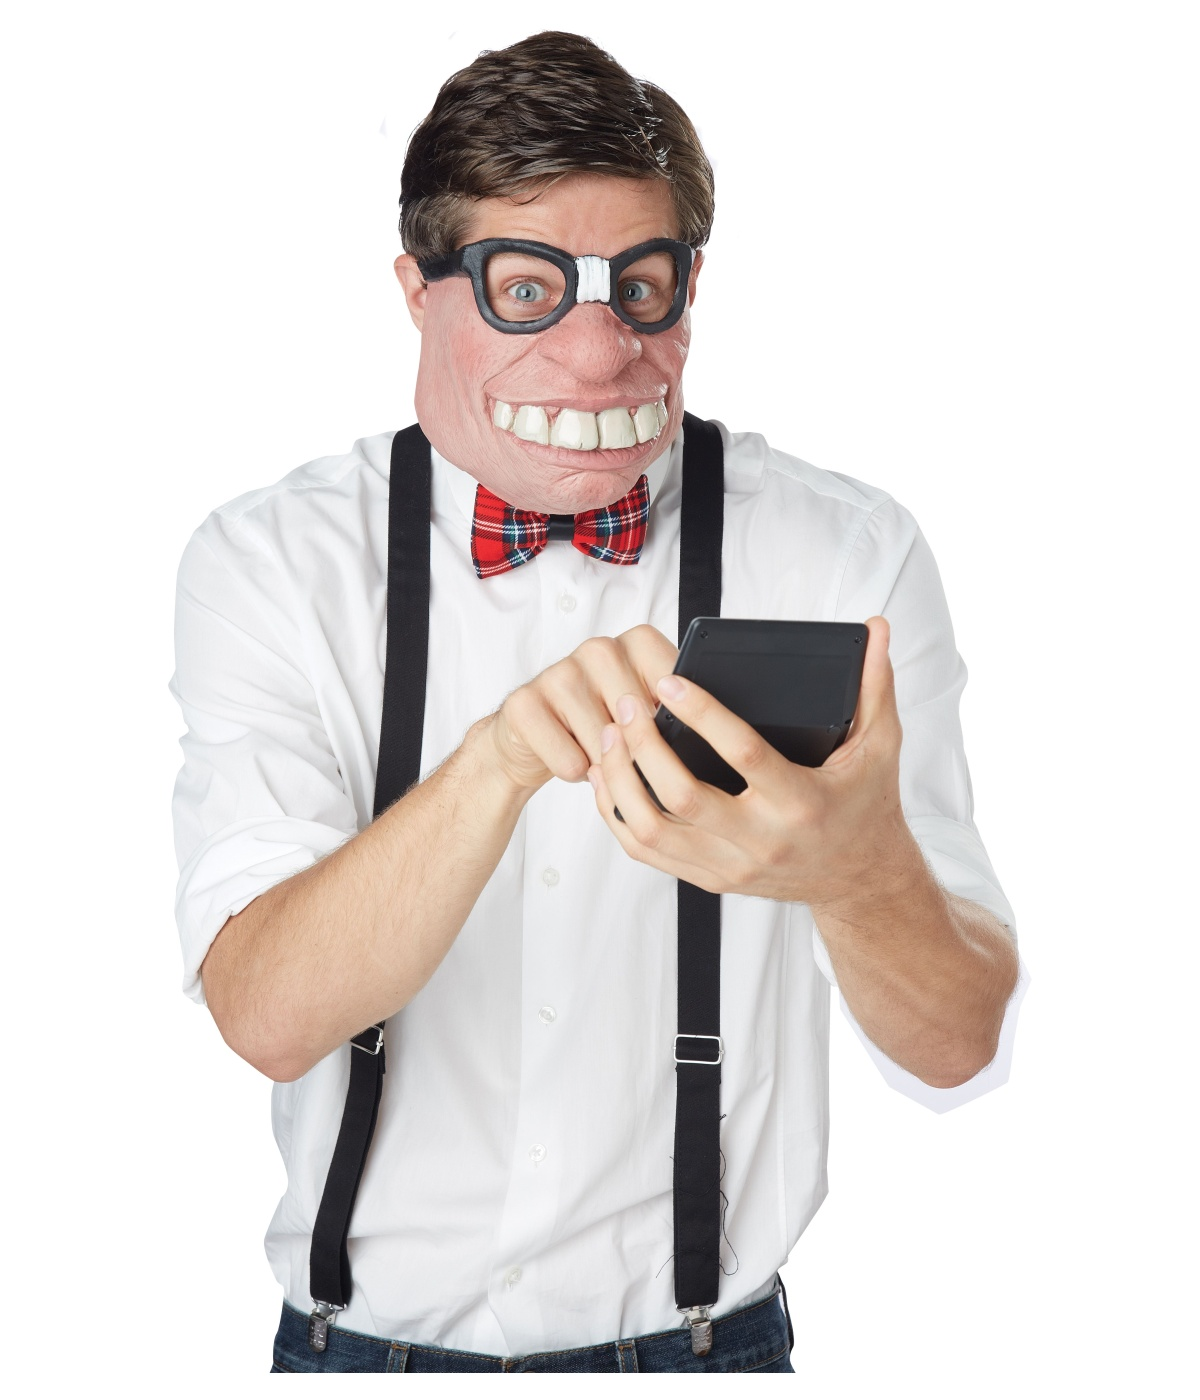 Geeked Out Nerd Costume Mens Mask - Funny Costumes